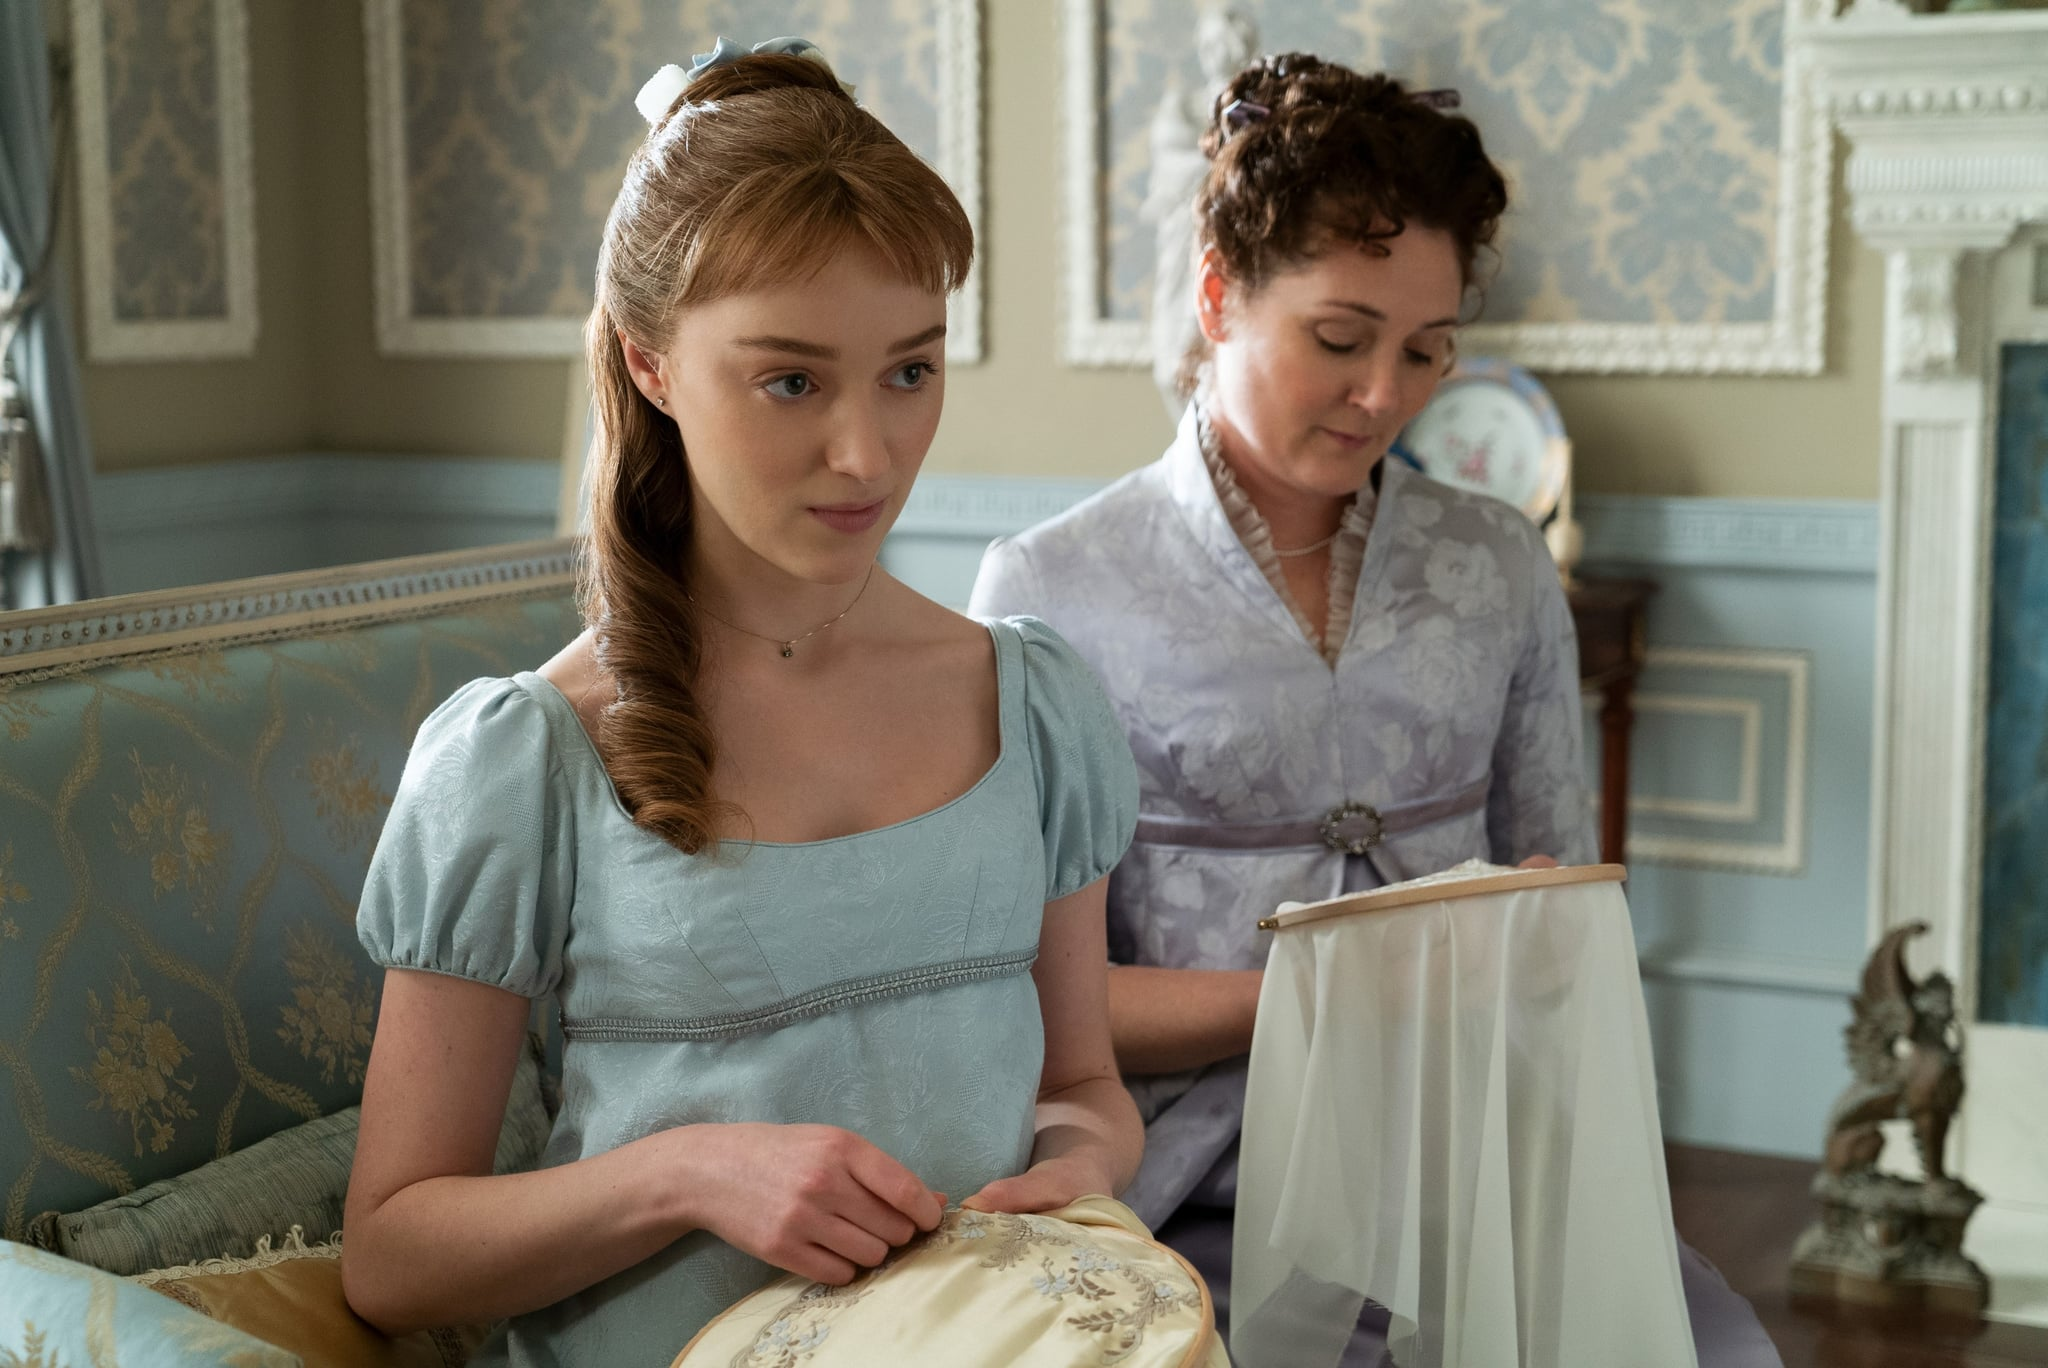 BRIDGERTON, from left: Phoebe Dynevor, Ruth Gemmell, Diamond of the First Water', (Season 1, ep. 101, aired Dec. 25, 2020). photo: Liam Daniel / Netflix / Courtesy Everett Collection